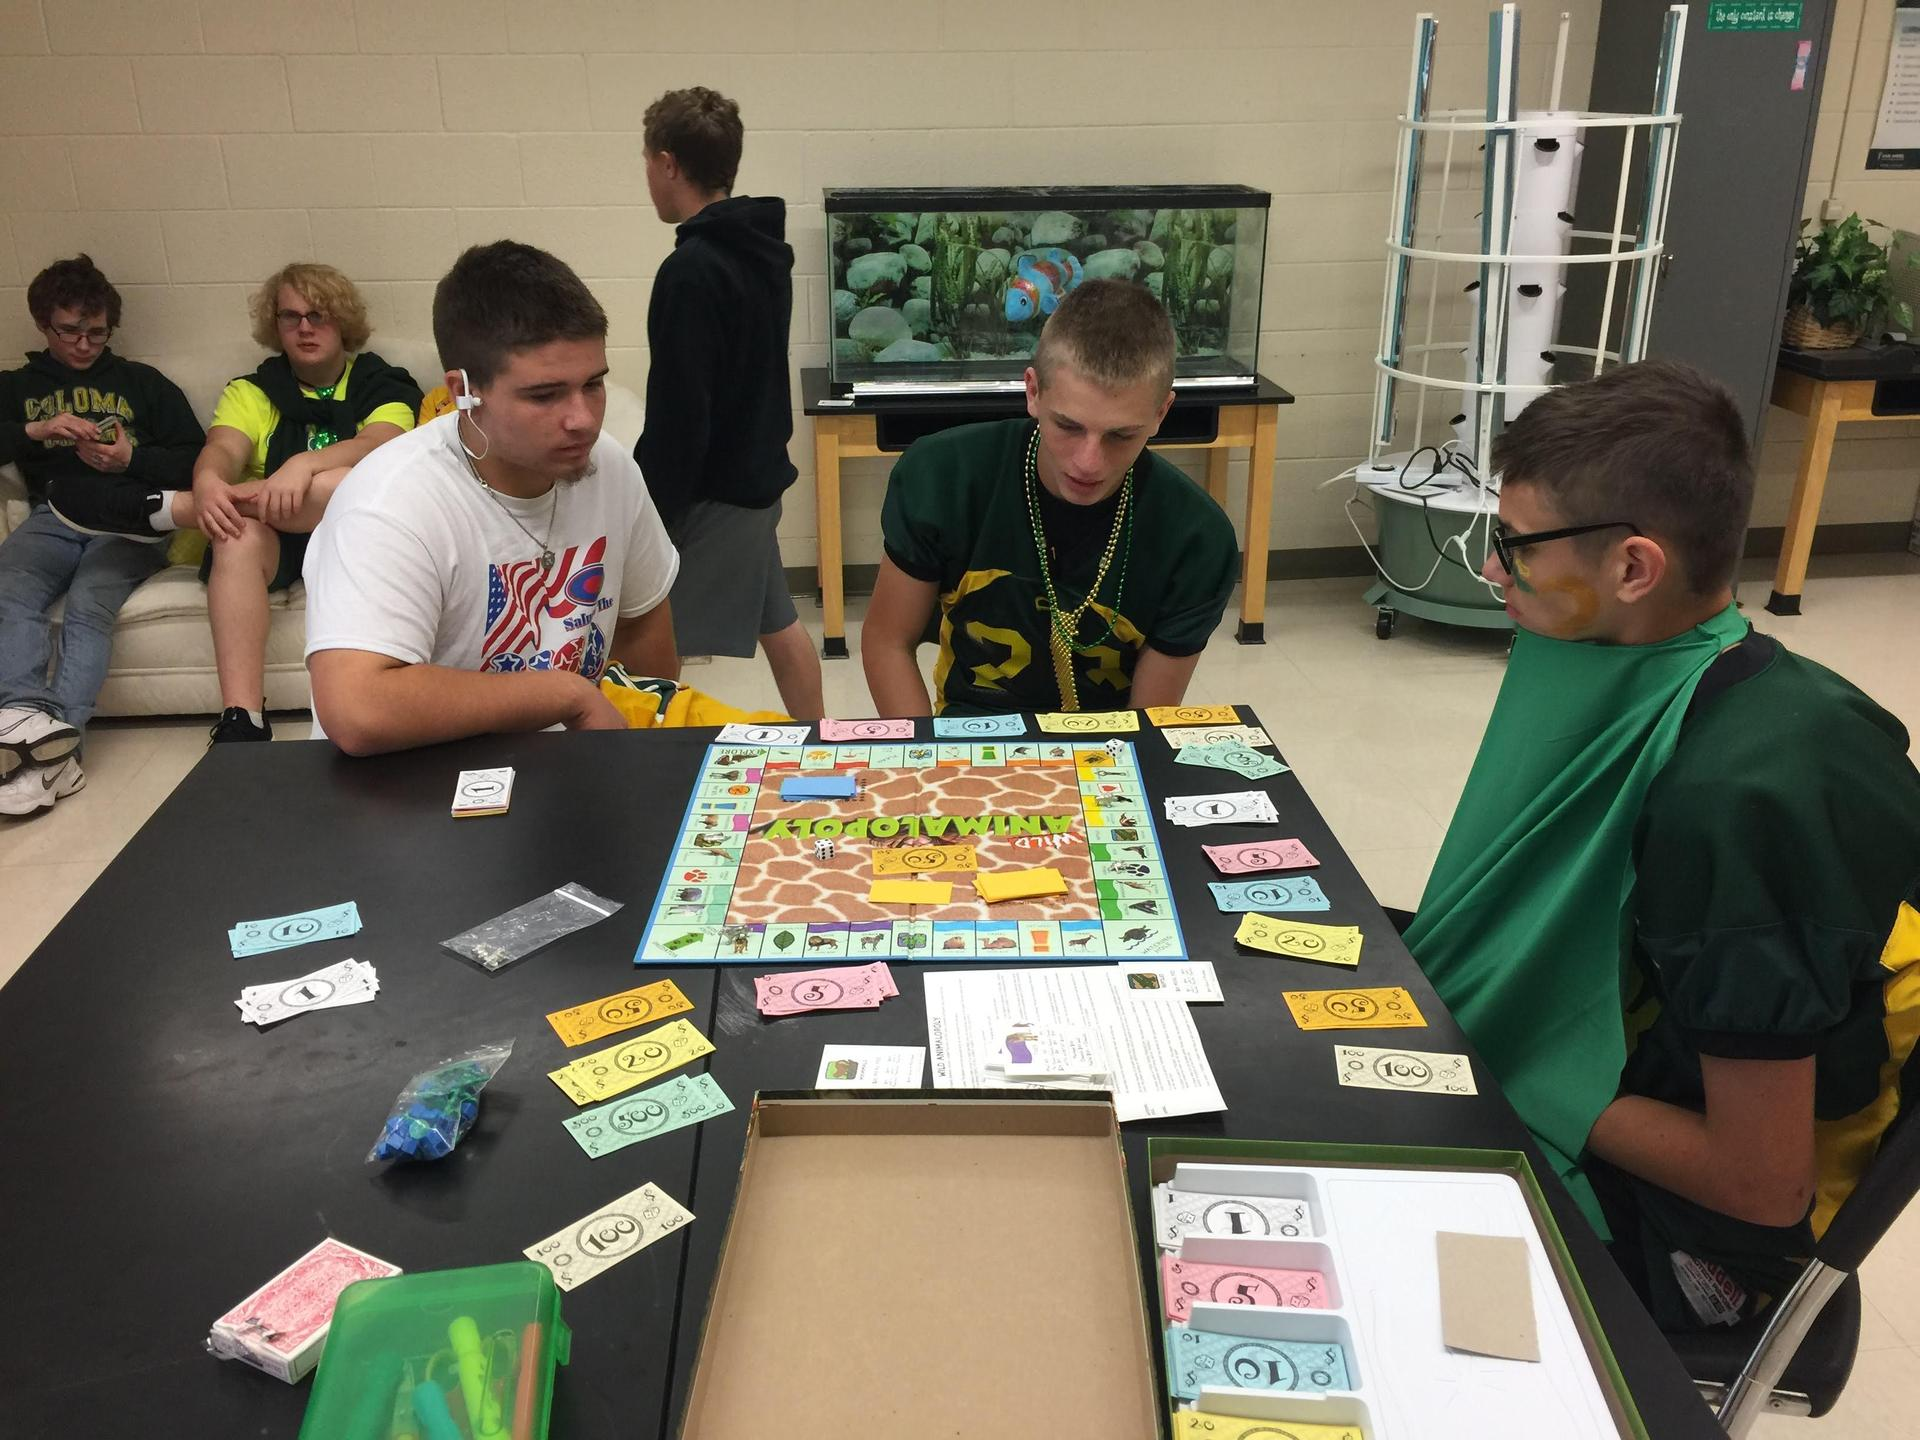 Playing some board games on Homecoming Day